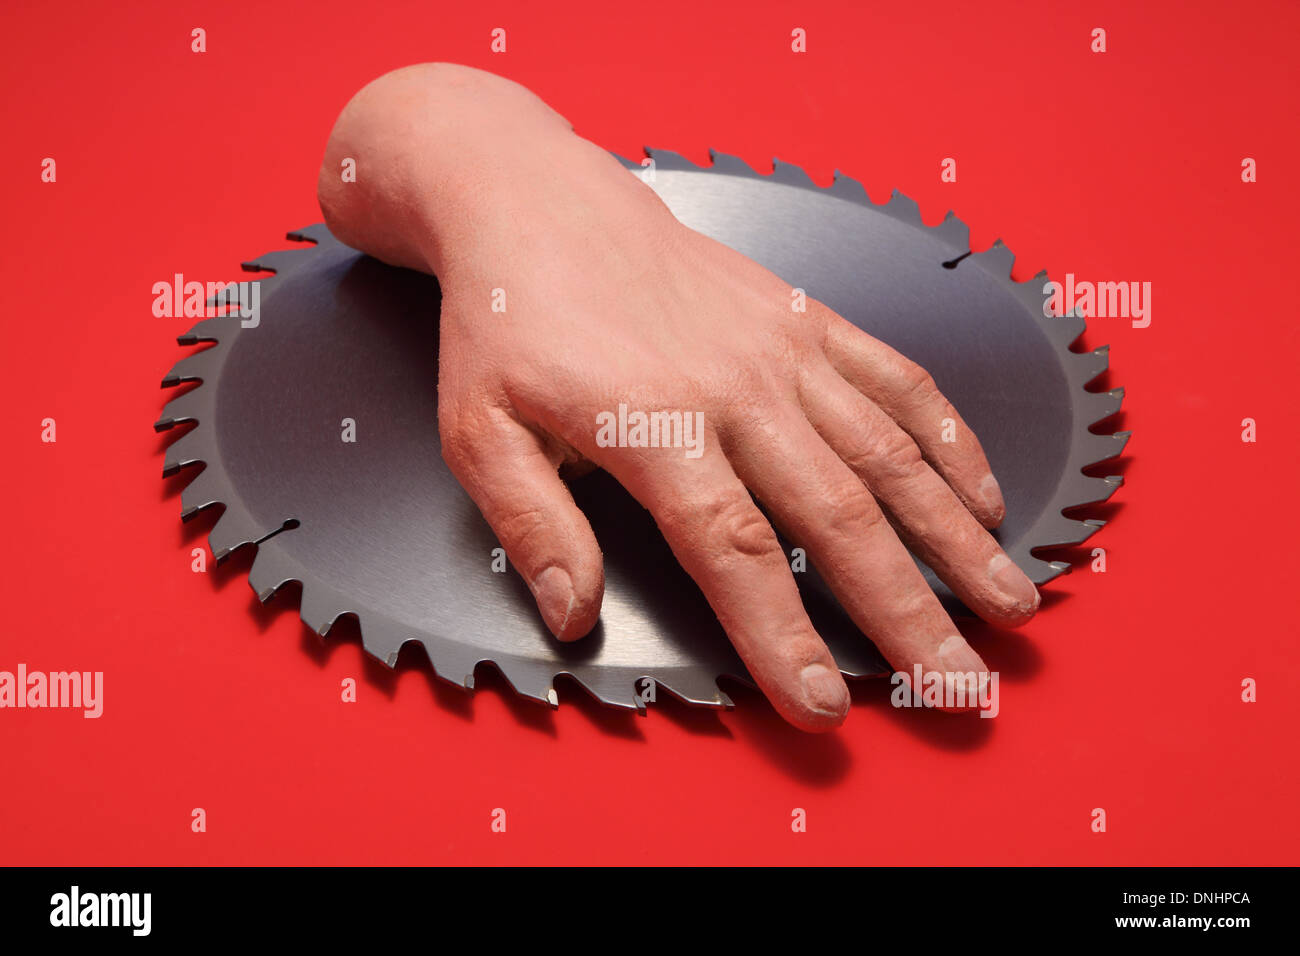 A fake human hand on a metal circular saw blade with a red background. Stock Photo